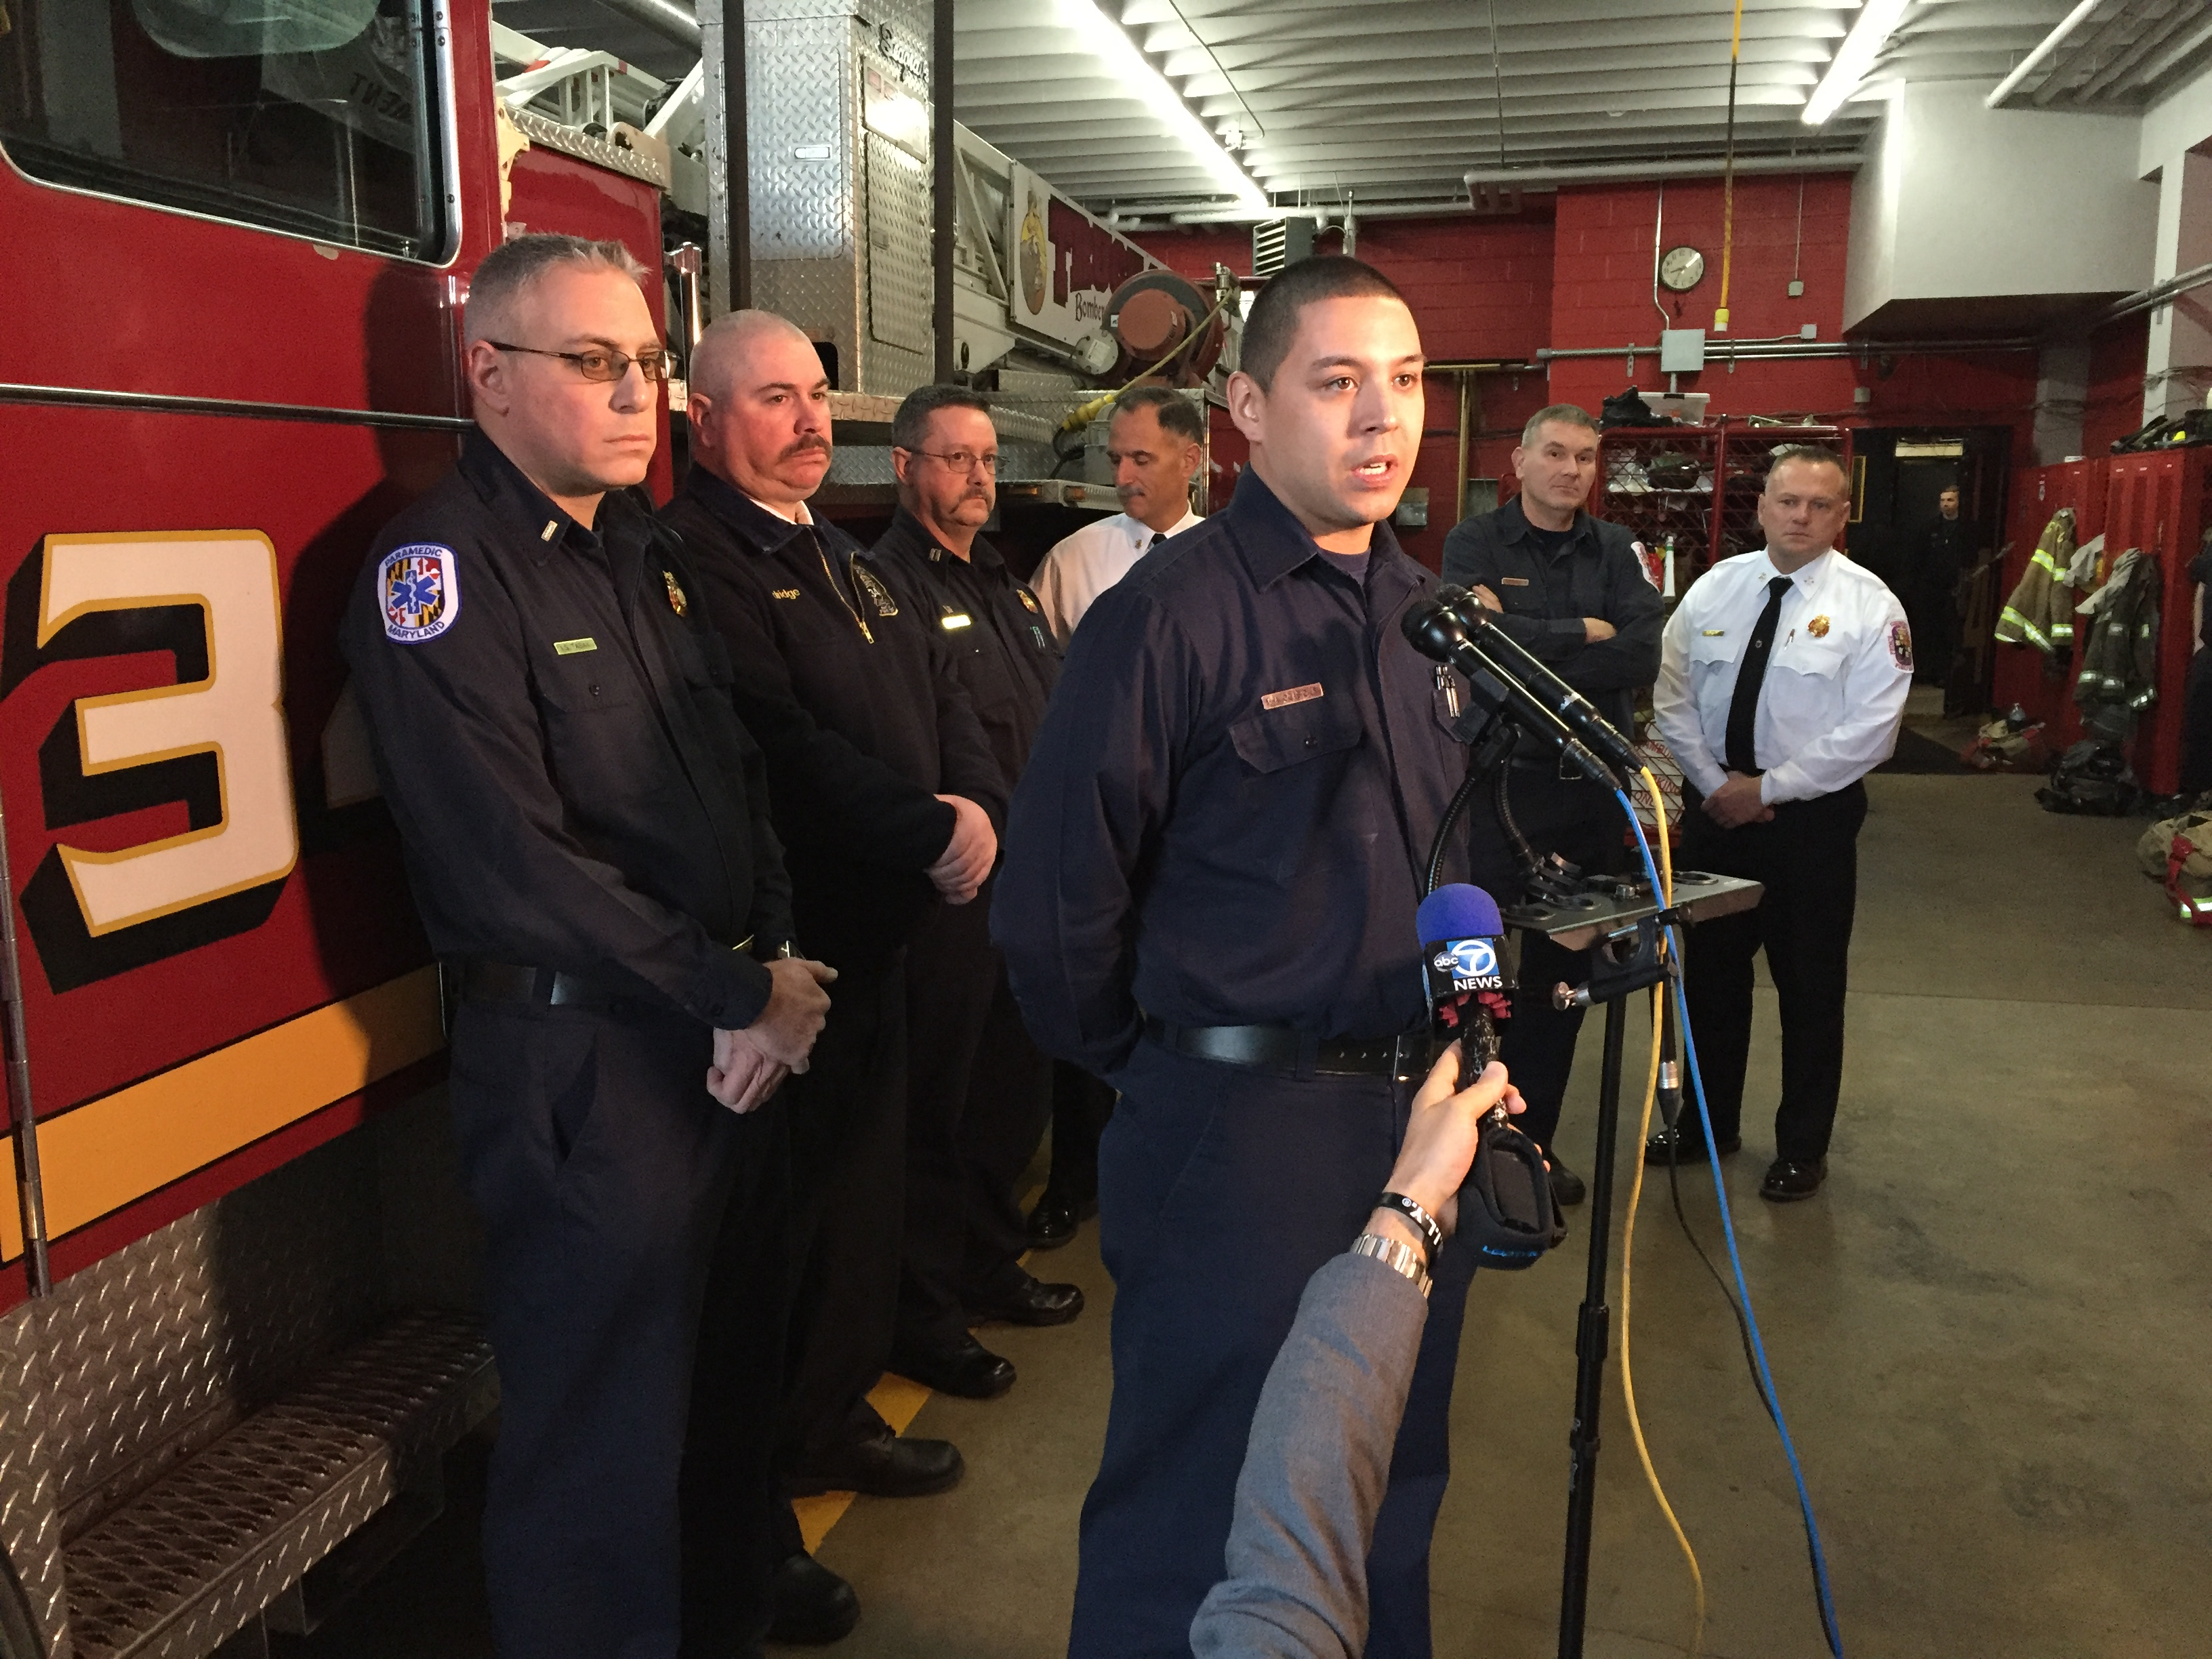 Firefighters describe dramatic rescues in Md. apartment fire